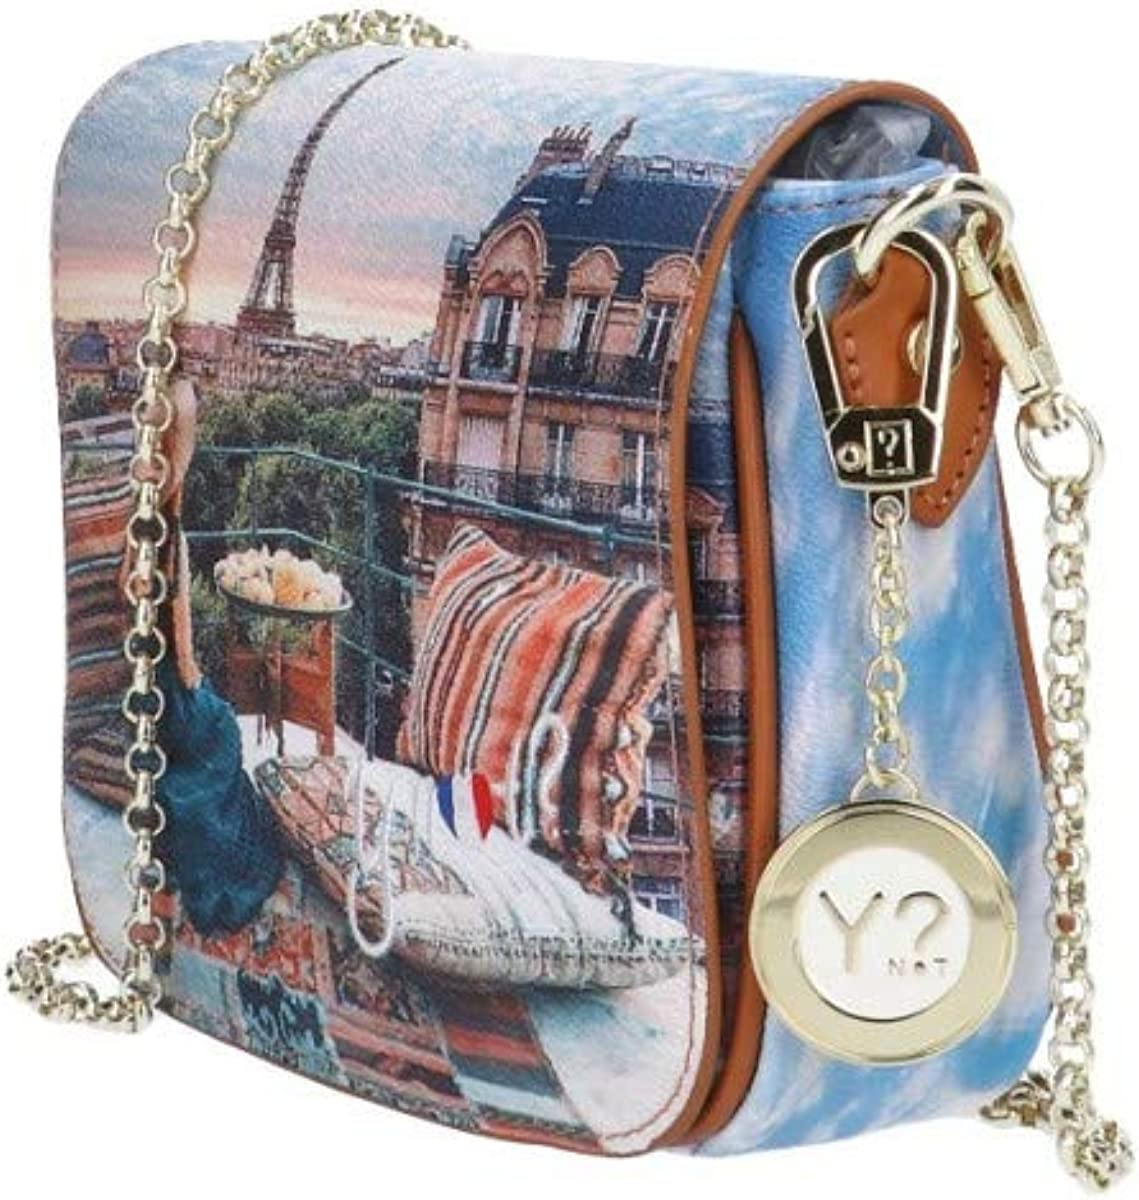 YNOT? YES-430S0 Tracolla Paris viewEcopelle Paris View